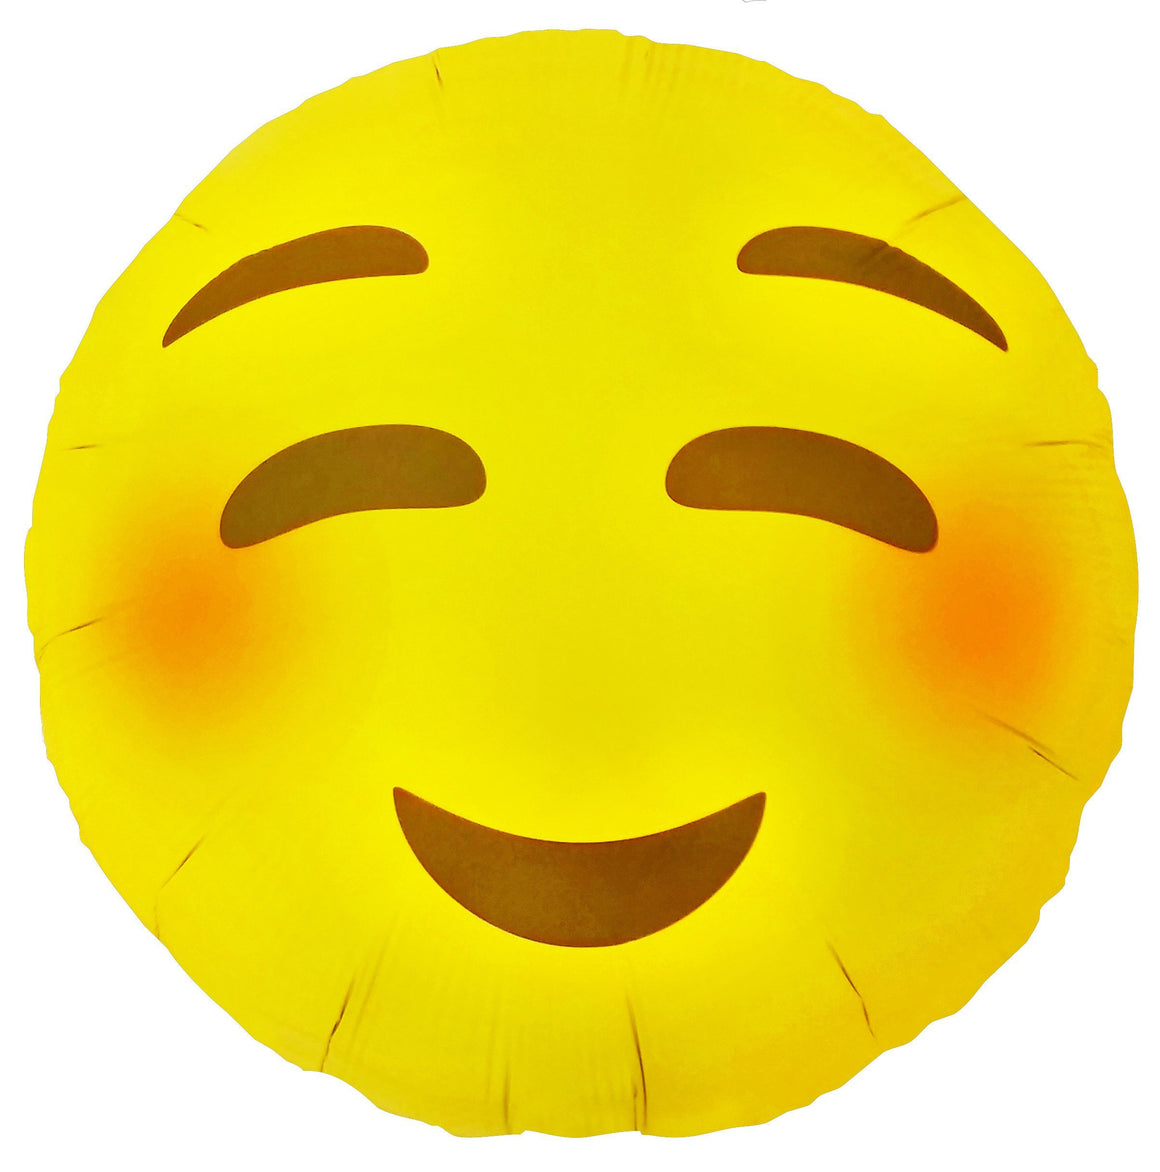 BALLOONS - EMOJI NORTHSTAR BLUSHING SMILE, Balloons, Northstar - Bon + Co. Party Studio